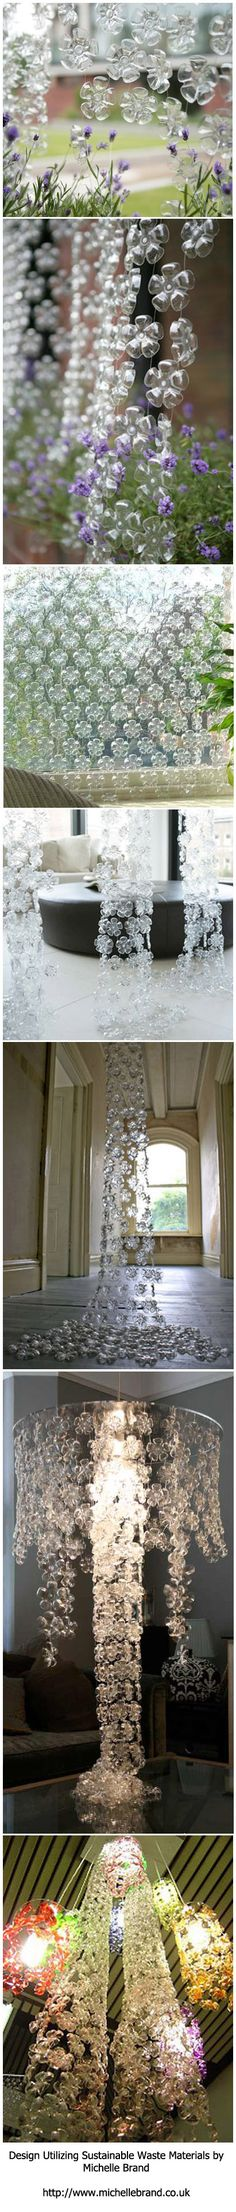 Michelle Brand :: Decor created from the bottoms of plastic containers. Creating beautiful decor with waste products. Visit her site @ http://www.michellebrand.co.uk or http://michellebrand.tumblr.com for more information.